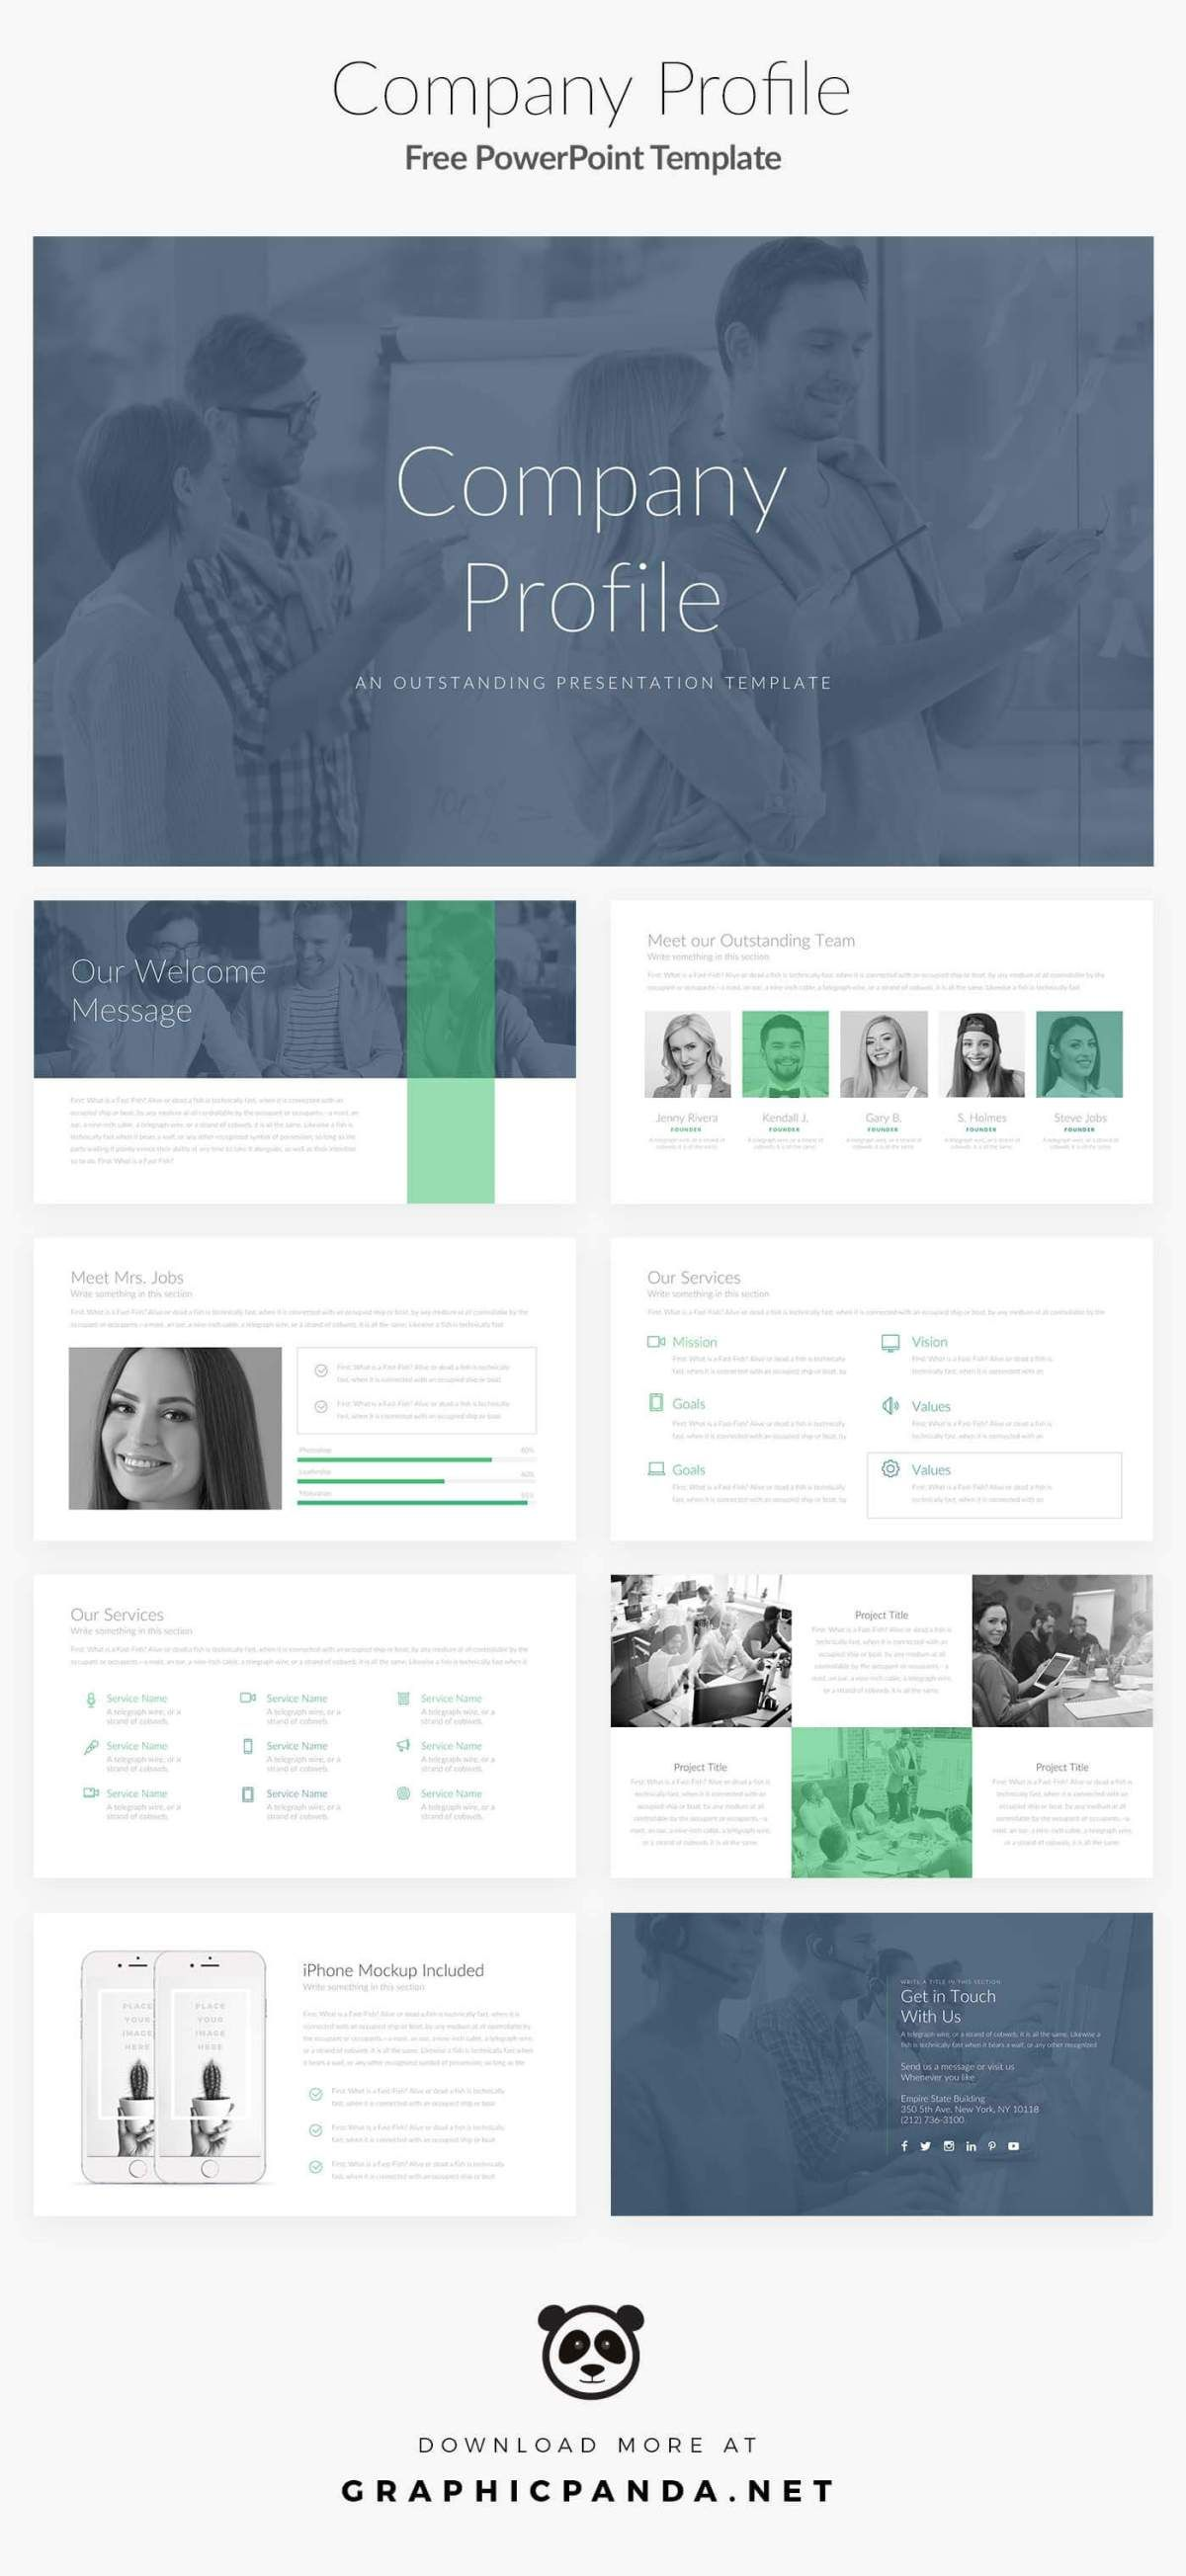 Free powerpoint template company profile pinterest free powerpoint template company profile accmission